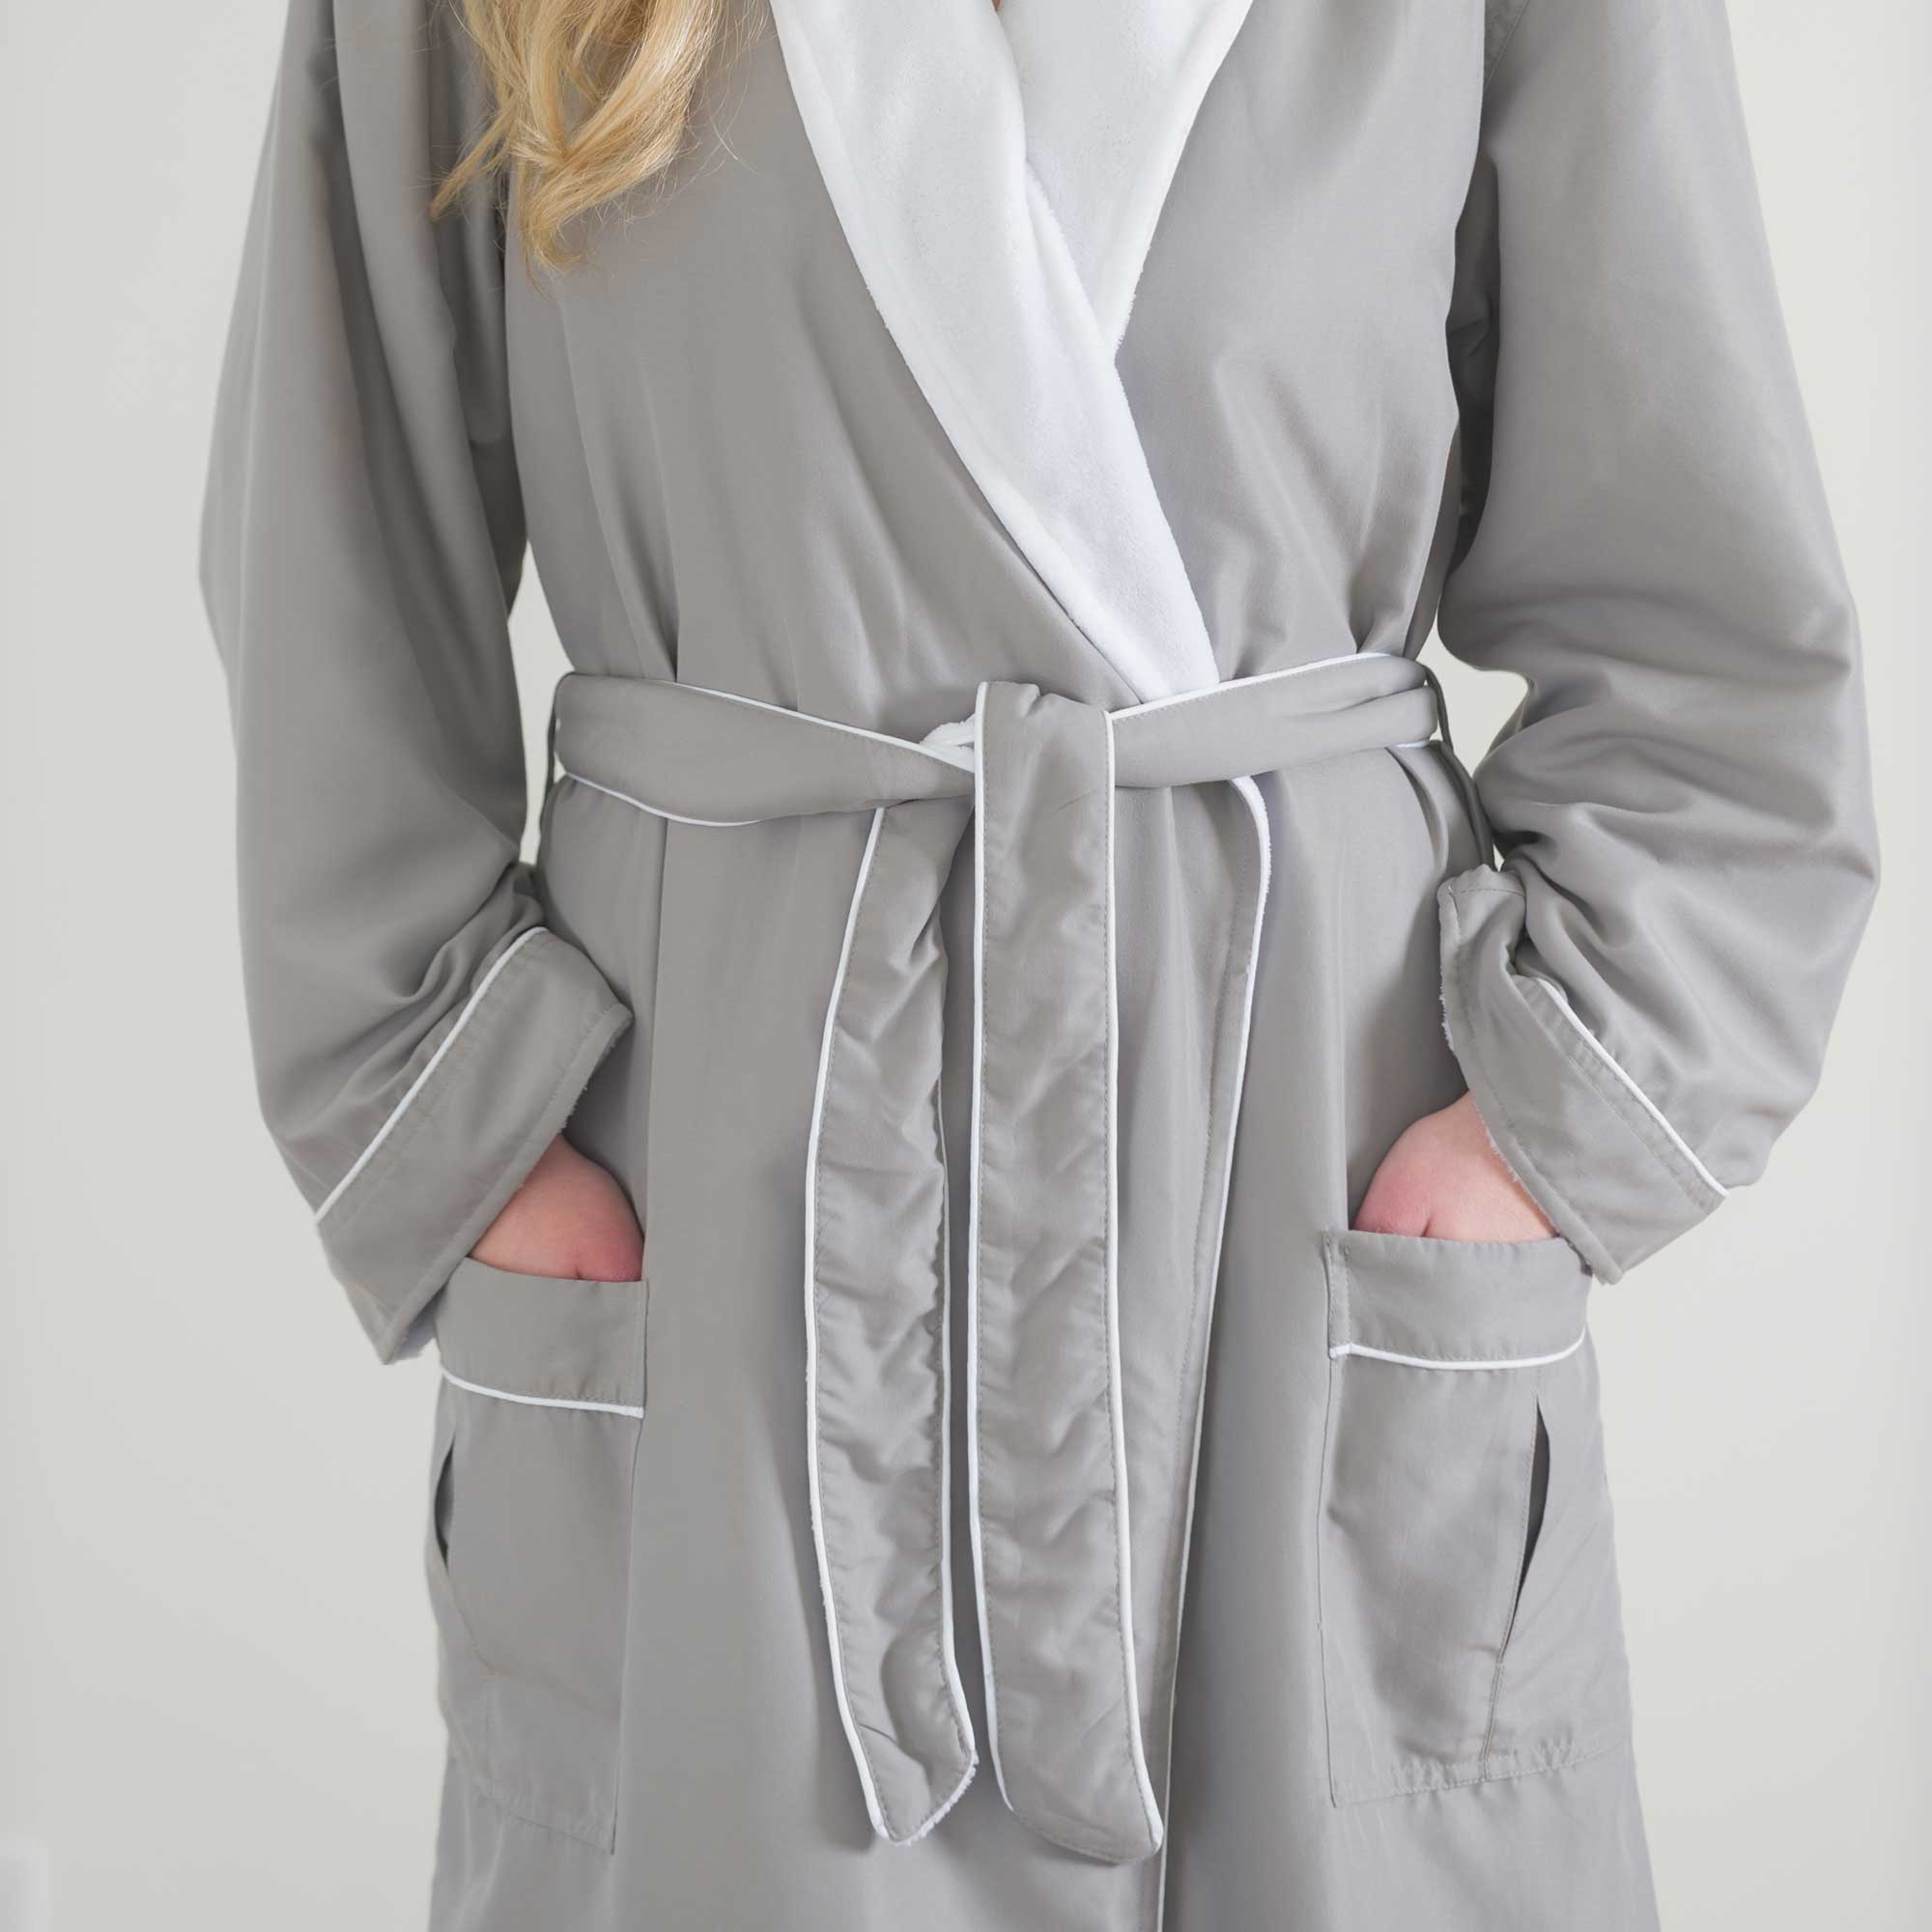 Luxury Robe